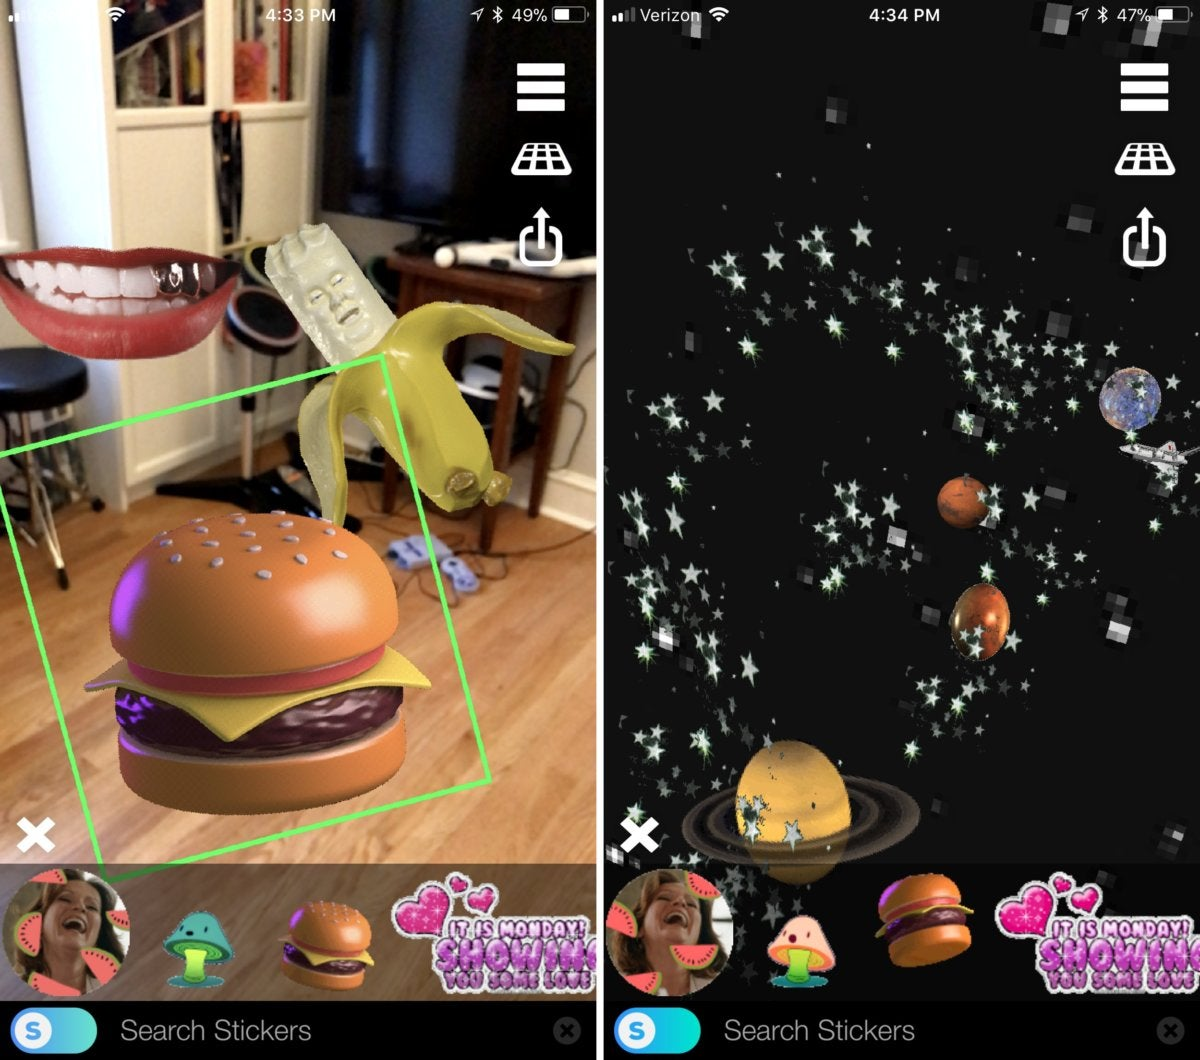 arkit giphy world